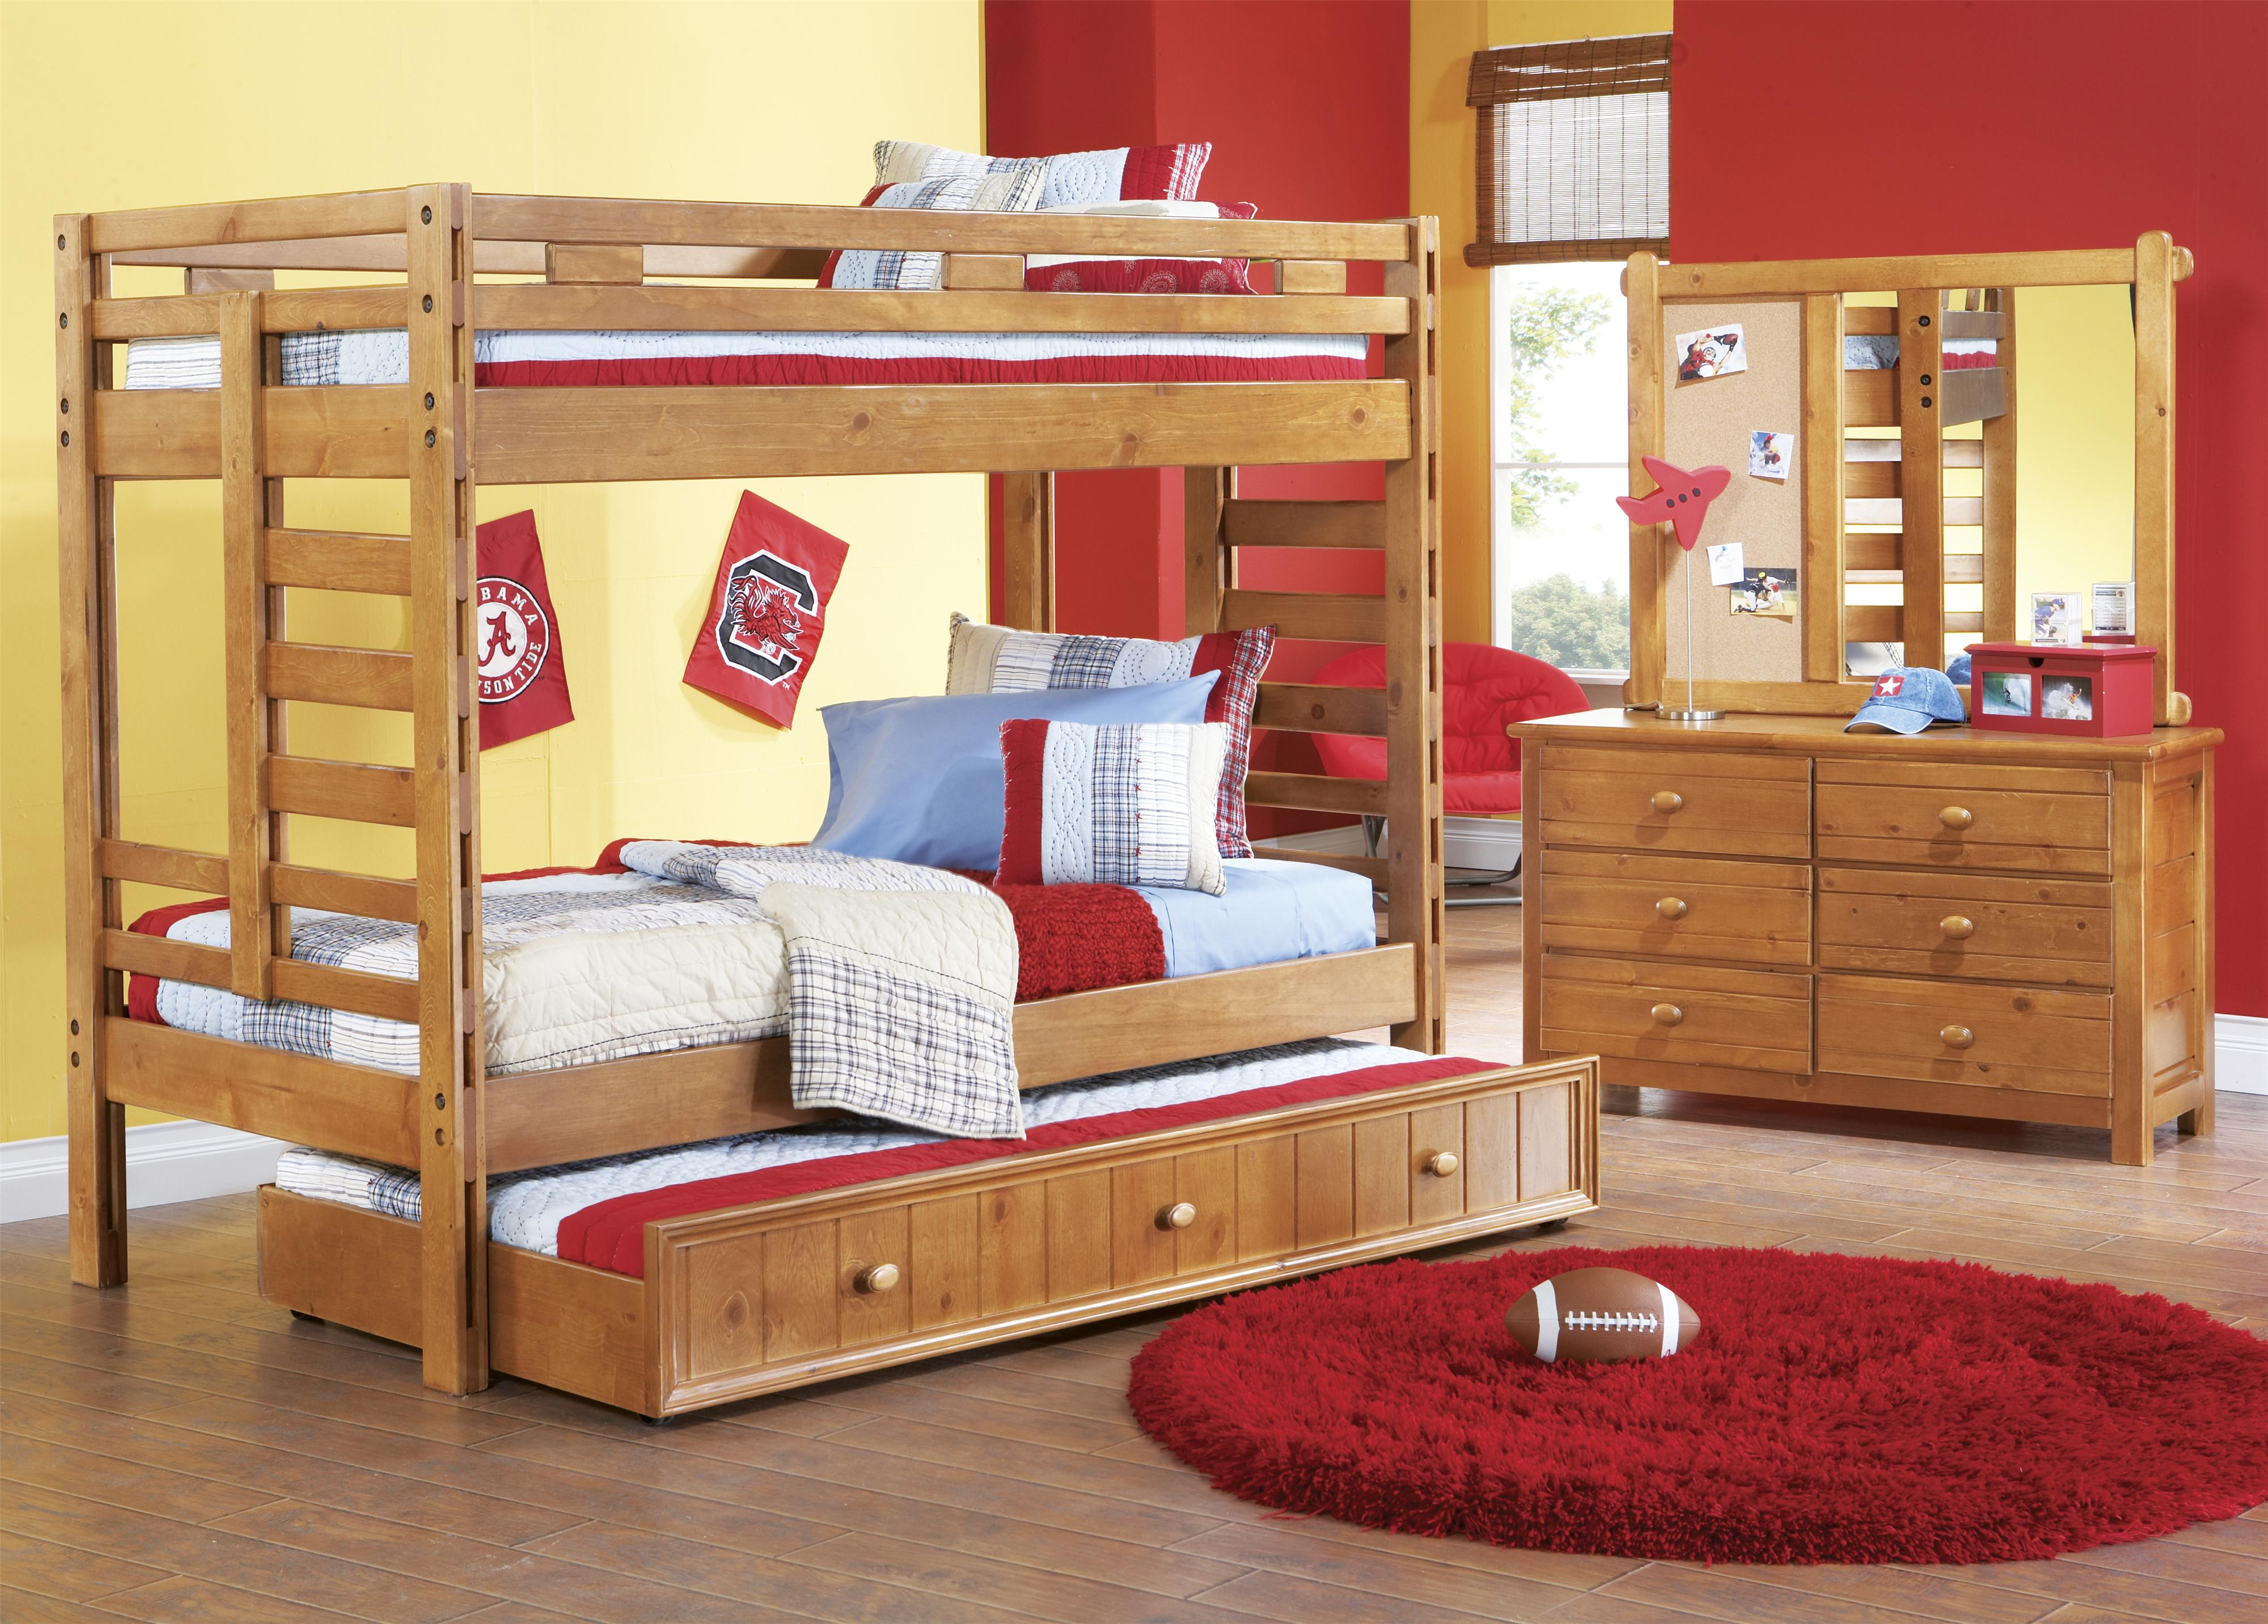 canyon creekside twin/twin loft bed w/ 2 chests and ladder